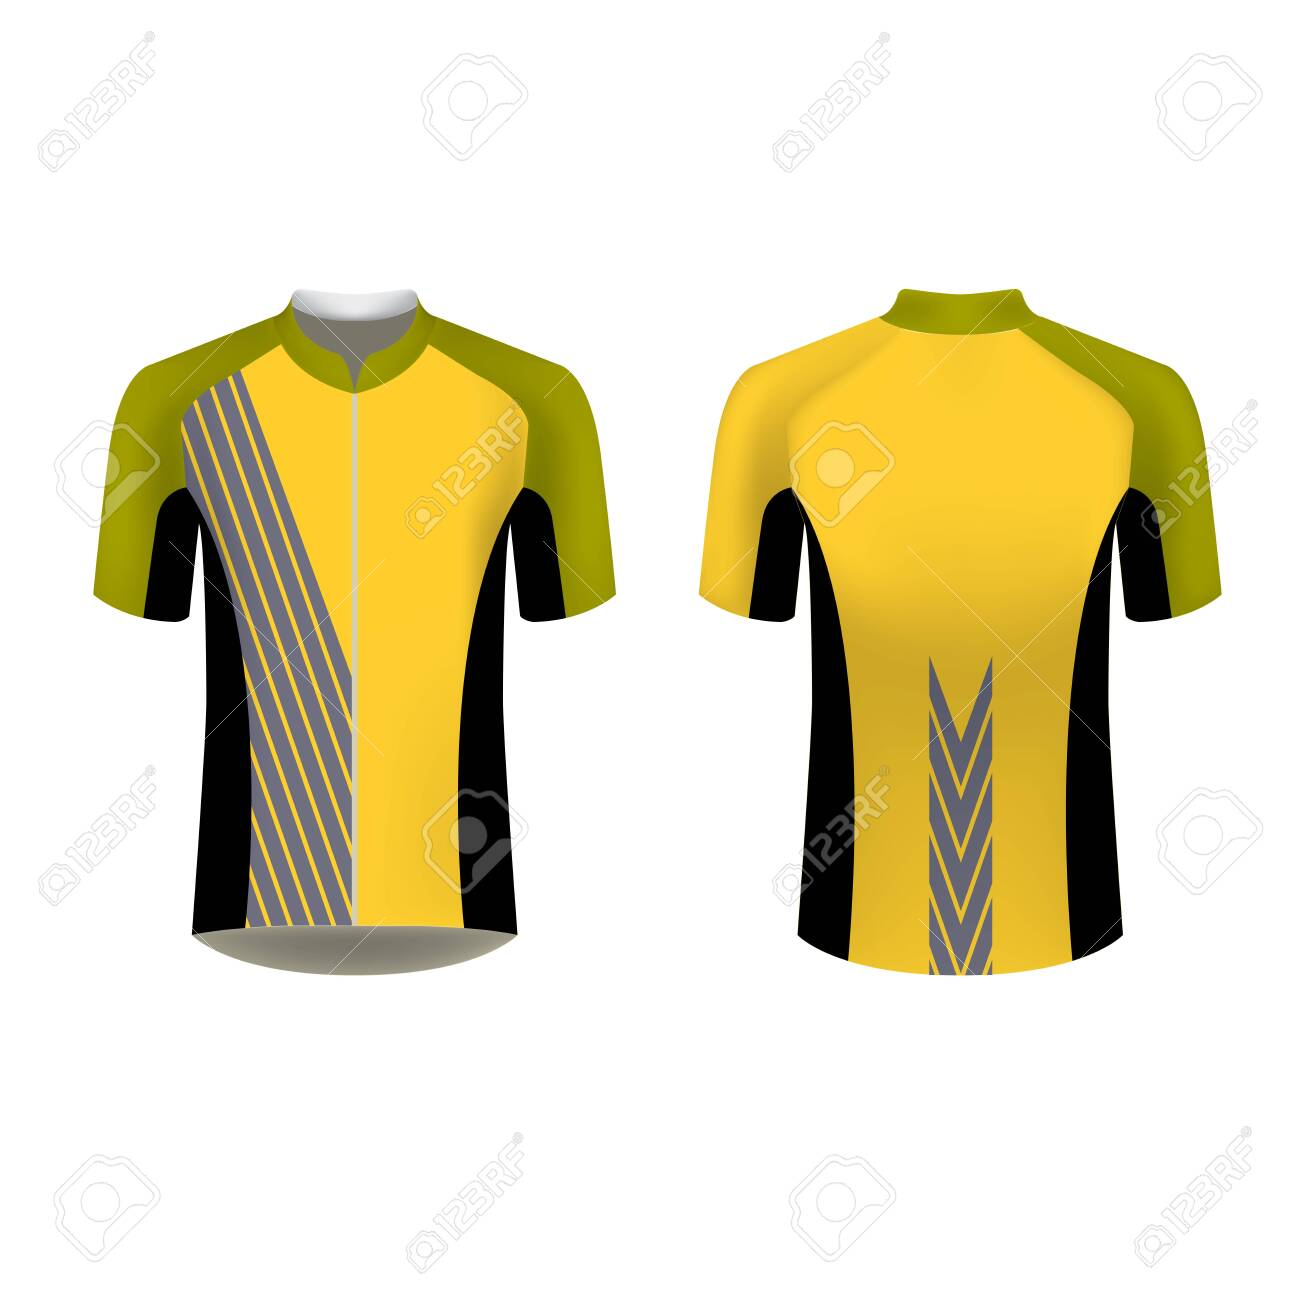 Cycling Jersey Mockup T Shirt Sport Design Template Sublimation Royalty Free Cliparts Vectors And Stock Illustration Image 127959895